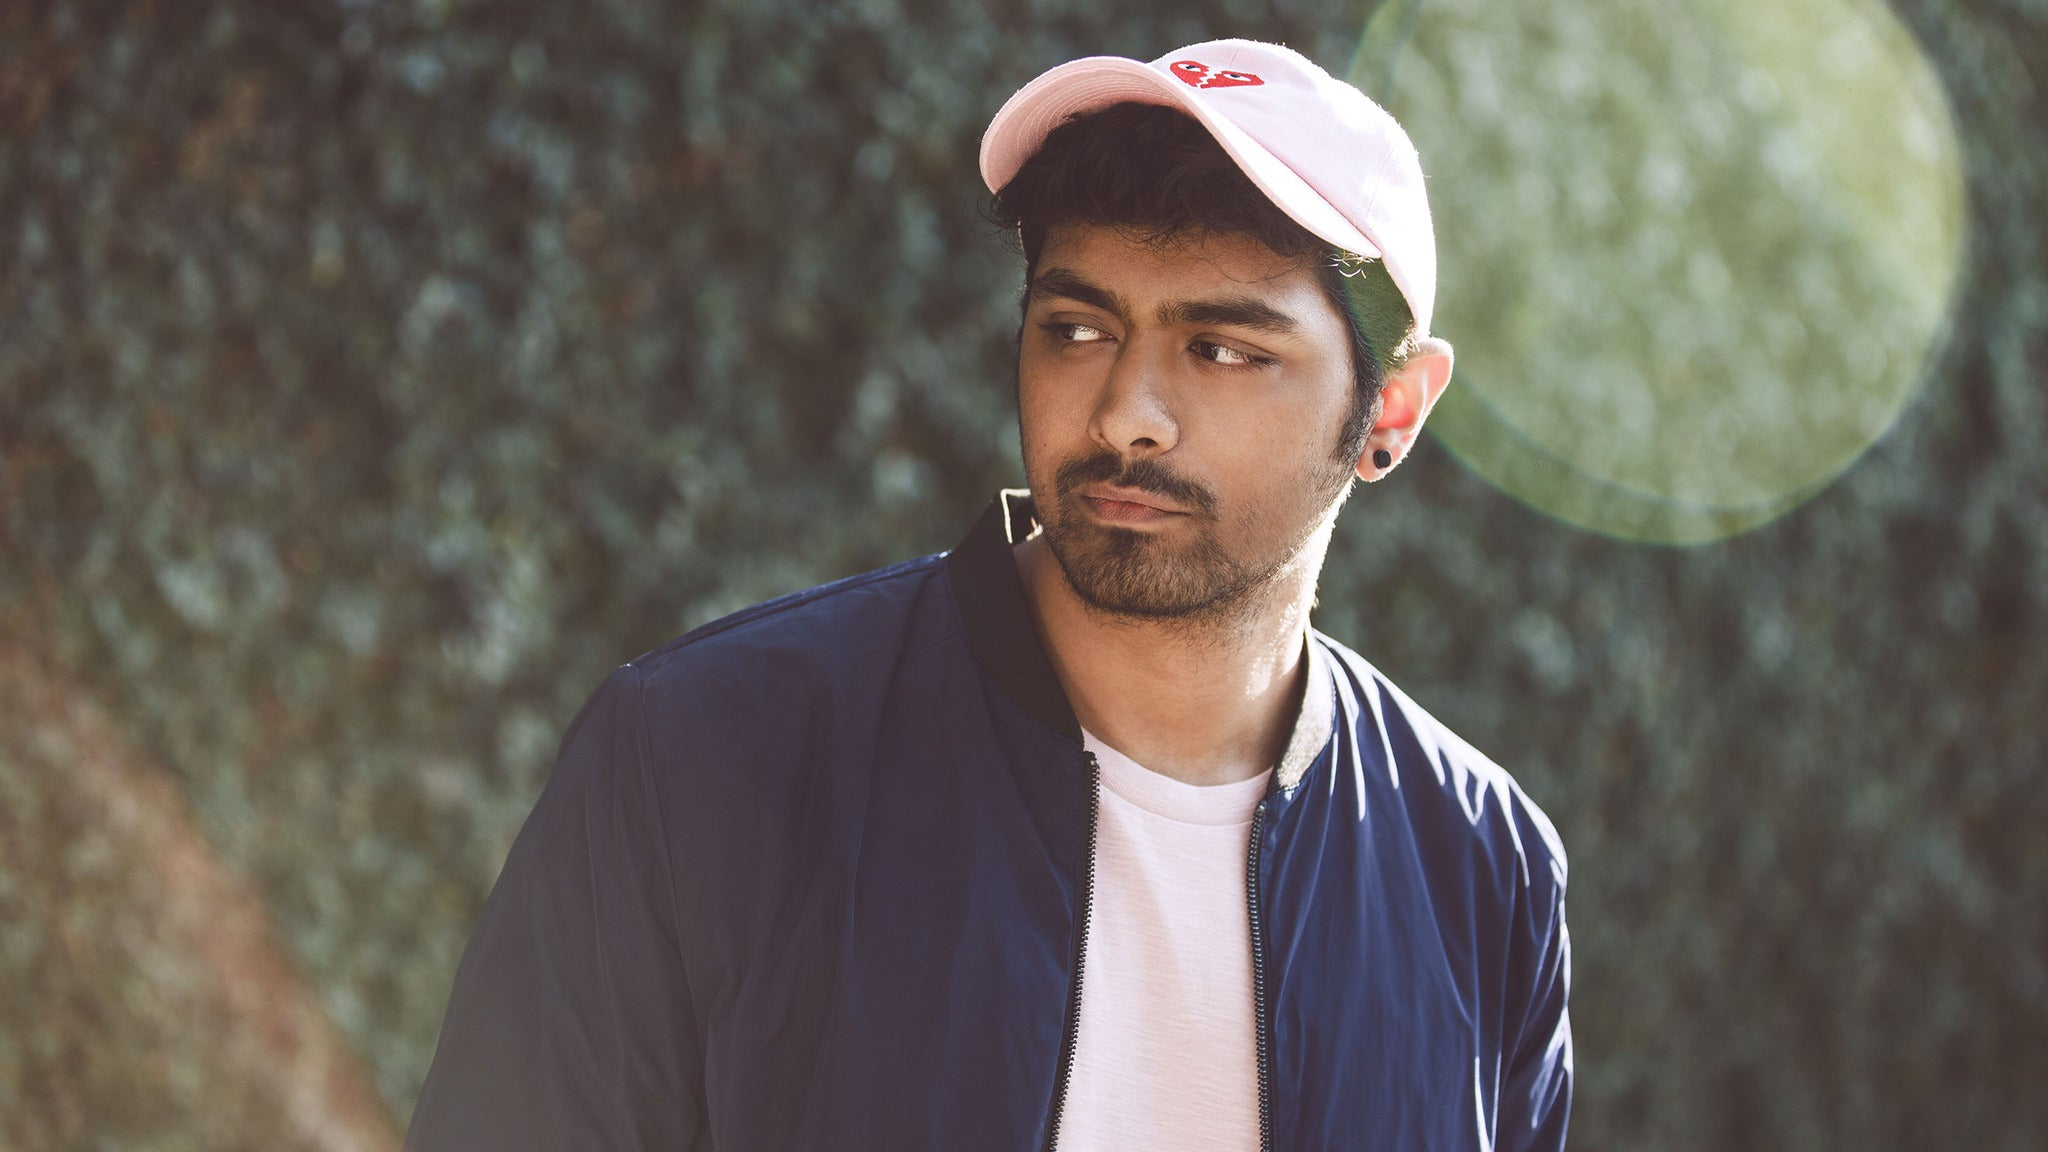 SORRY, THIS EVENT IS NO LONGER ACTIVE<br>Jai Wolf at Red Rocks Amphitheatre - Morrison, CO 80465